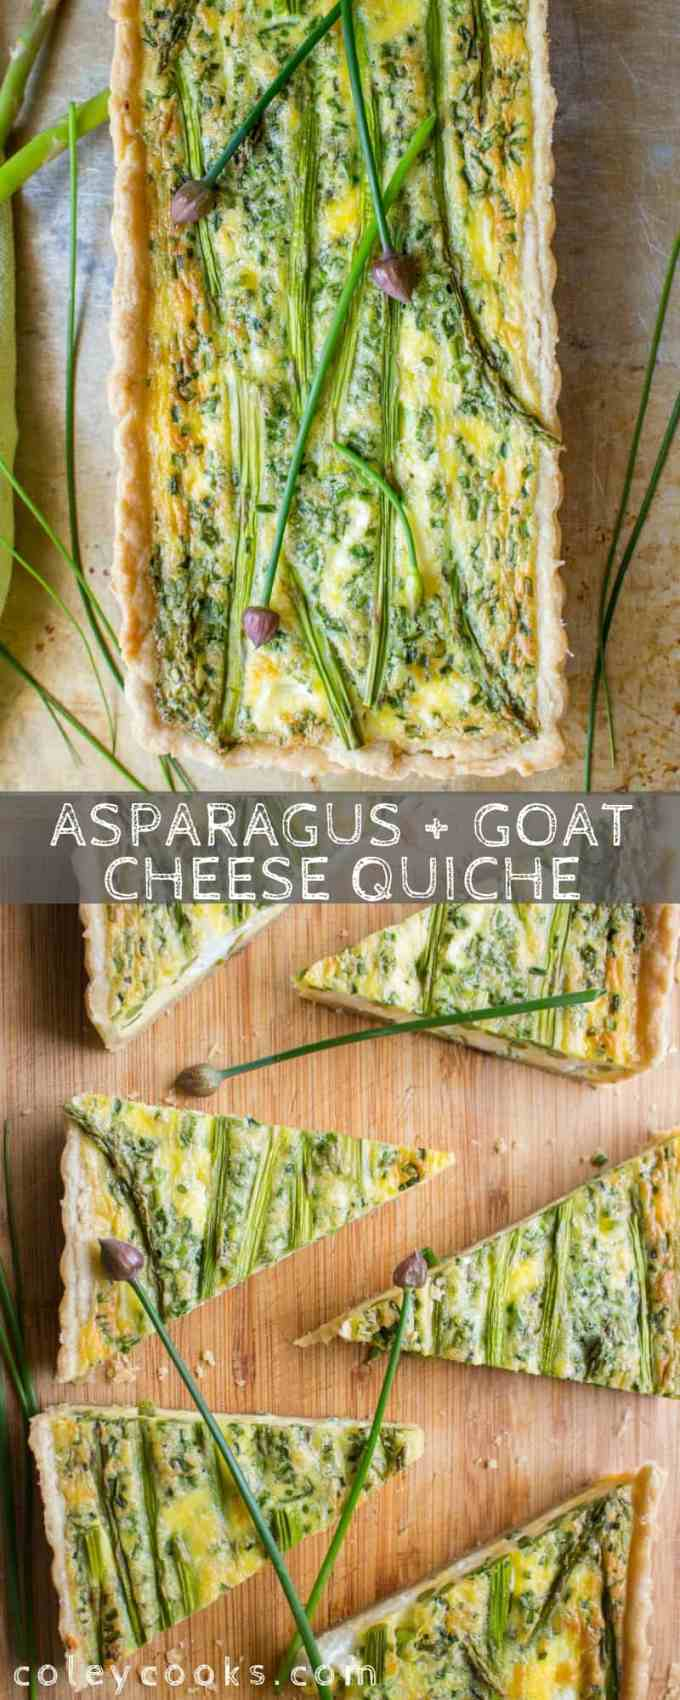 ASPARAGUS + GOAT CHEESE QUICHE | Easy quiche recipe perfect for spring! Easter brunch, mothers day, or just a Sunday at home! Flaky, buttery crust, creamy goat cheese, tender asparagus and perfectly set eggs. #eggs #easy #homemade #quiche #asparagus #goat #crust #cheese #chives #spring #easter #brunch | ColeyCooks.com